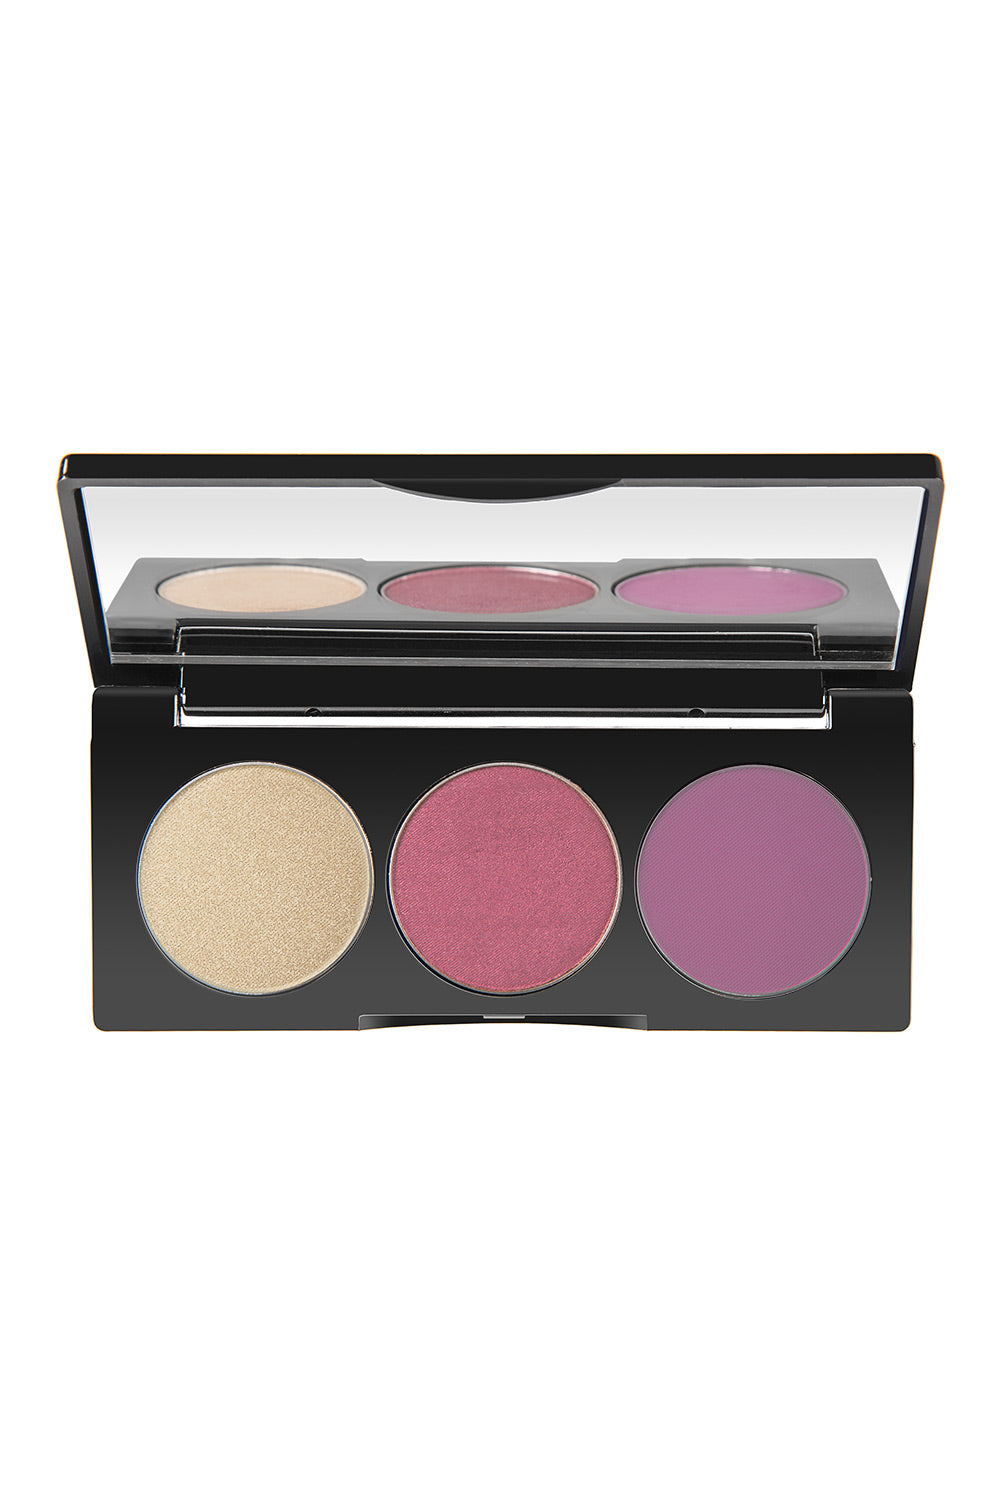 Type 1 Magnetic Eyeshadow Compact